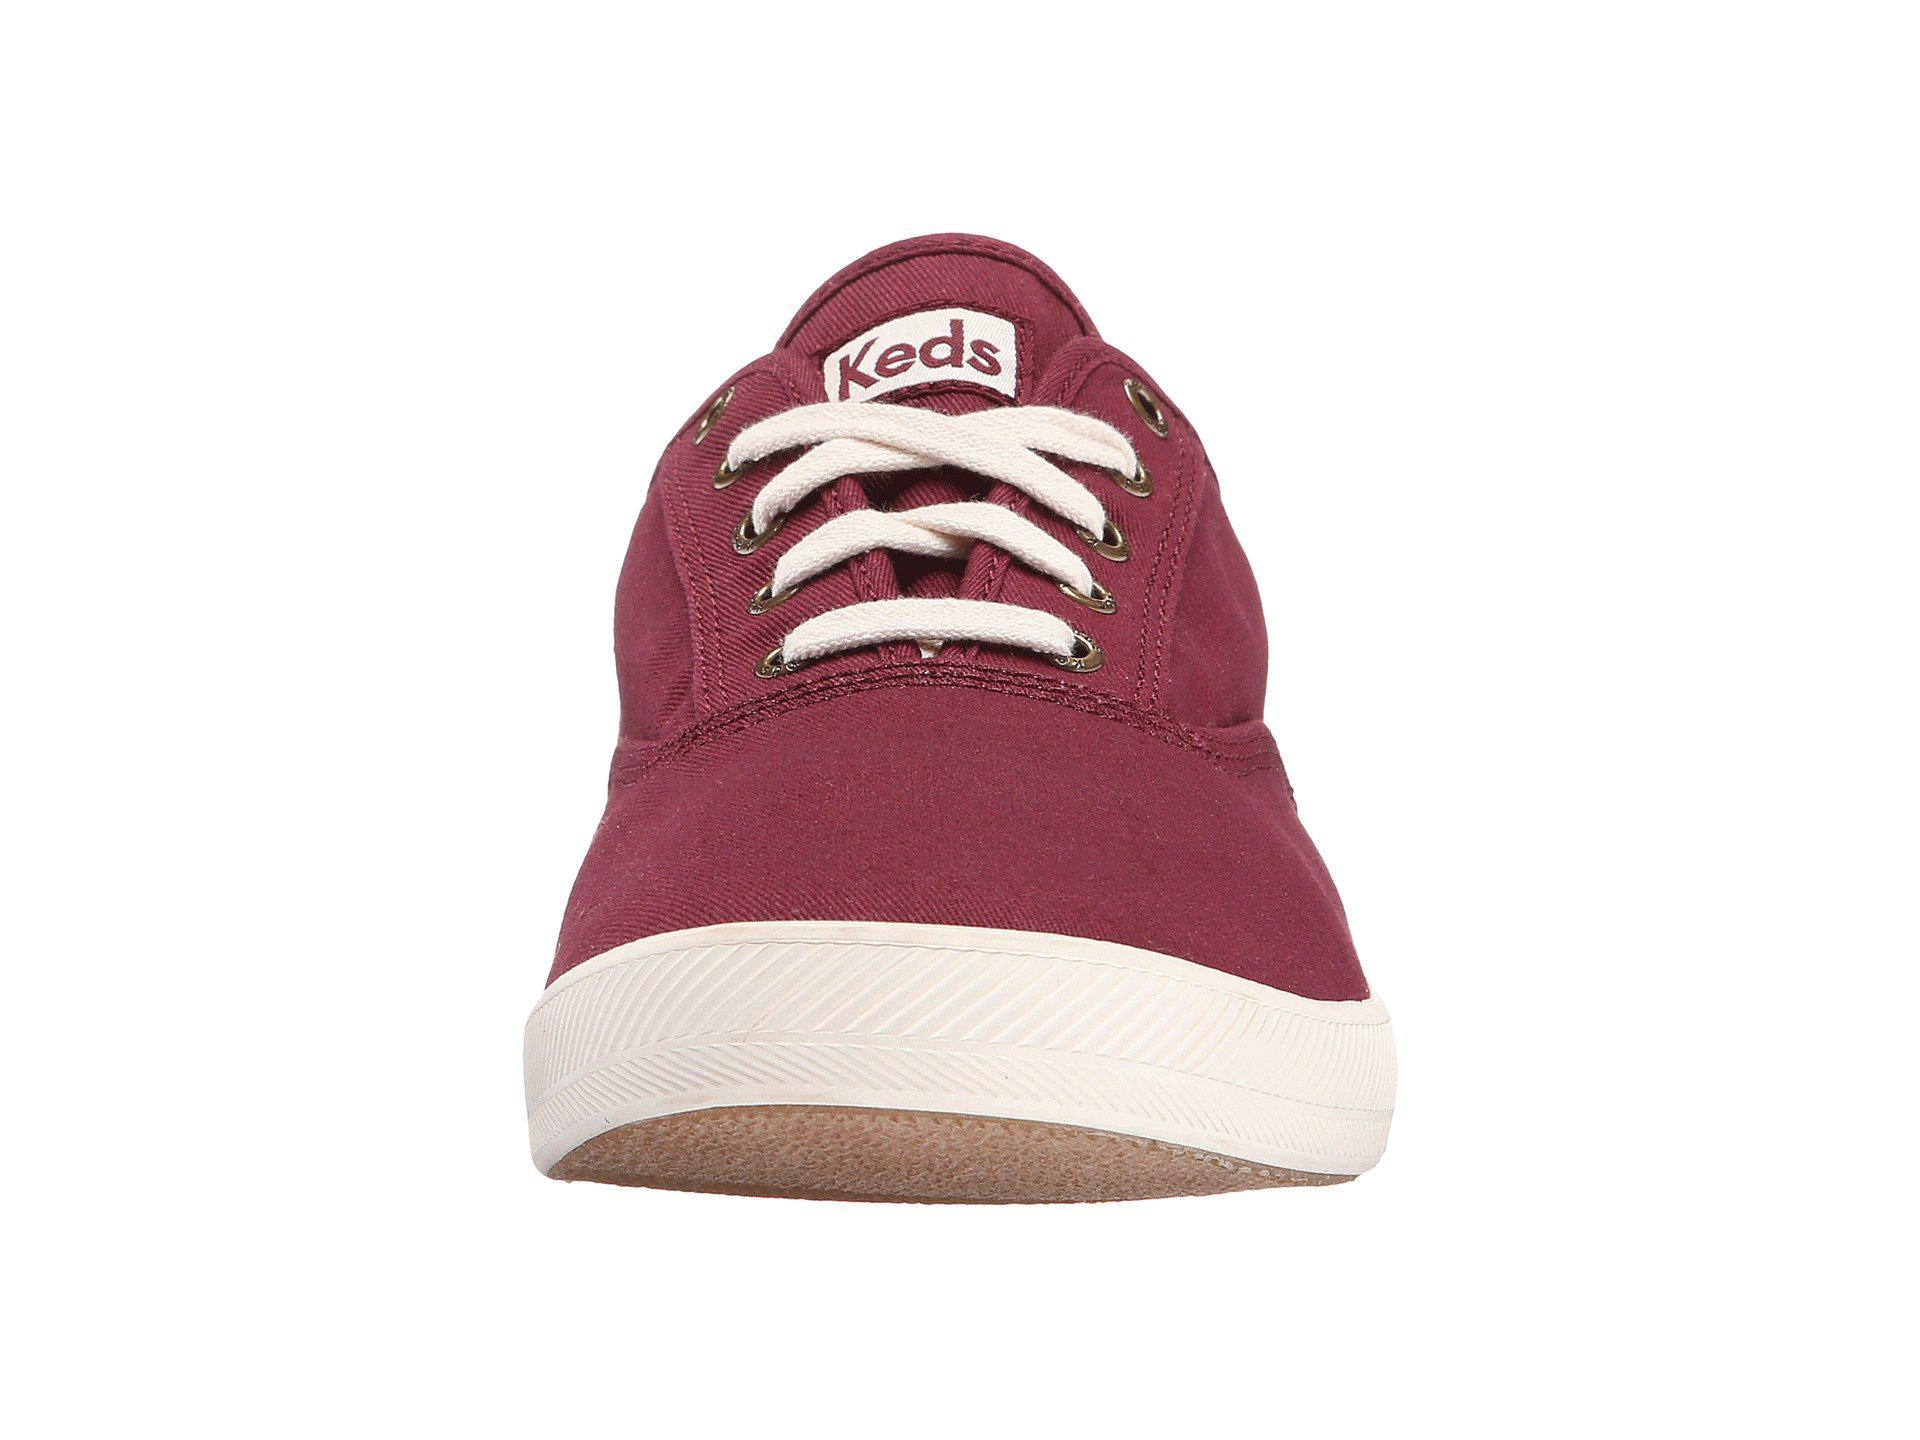 5bc747543c389 Lyst - Keds Champion-army Twill Cvo in Purple for Men